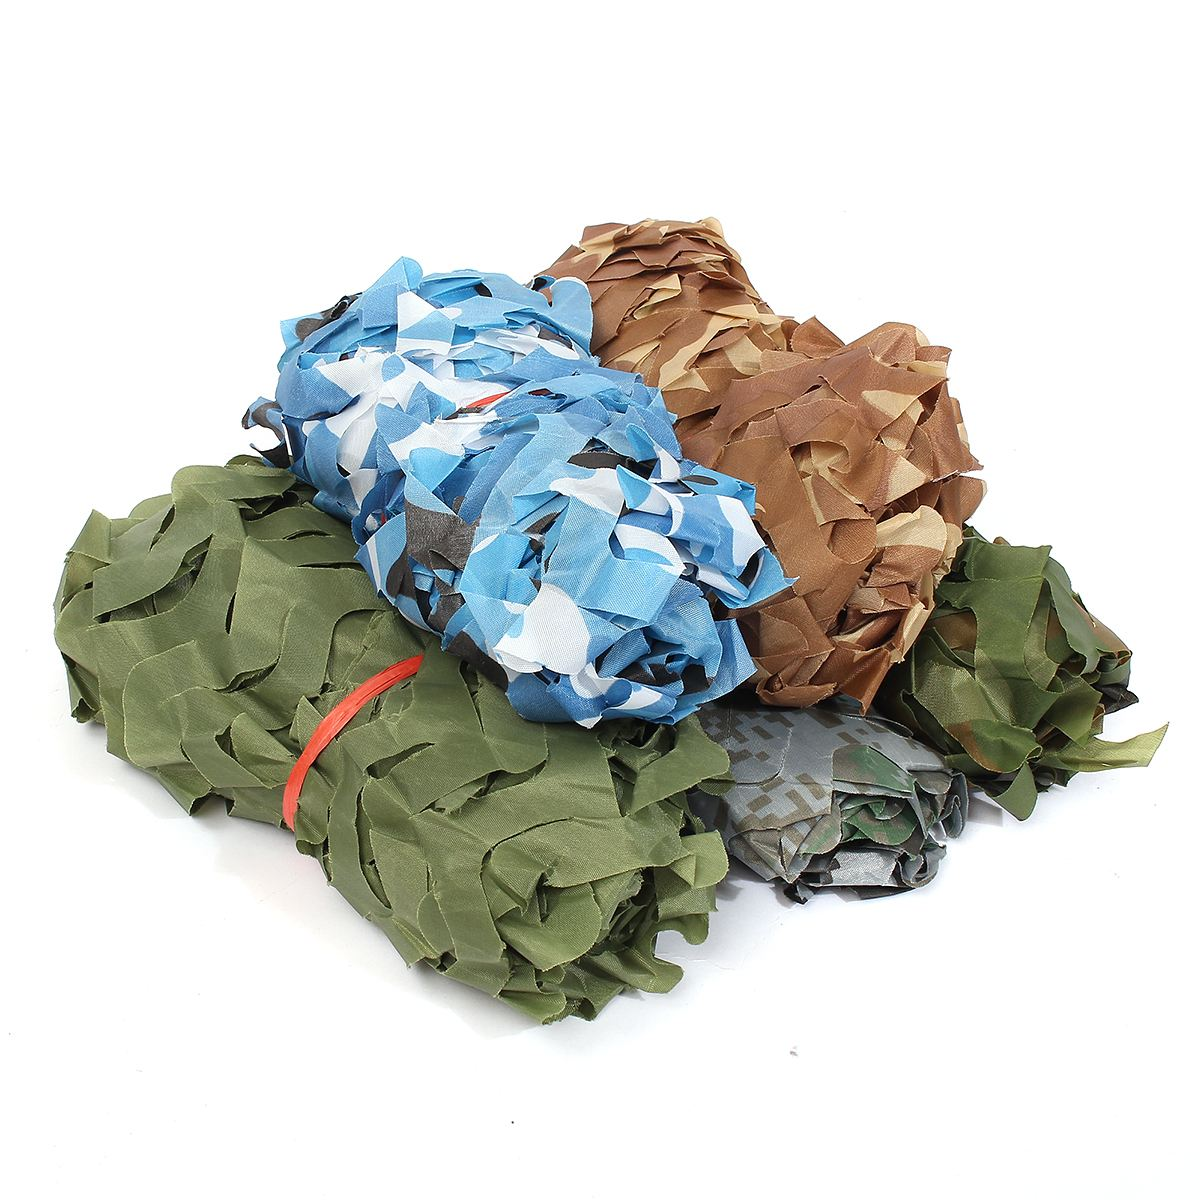 1*1.5m Hunting Military Camouflage Net Woodland Army Training Camo Netting Car Covers Tent Shade Camping Sun Shelter